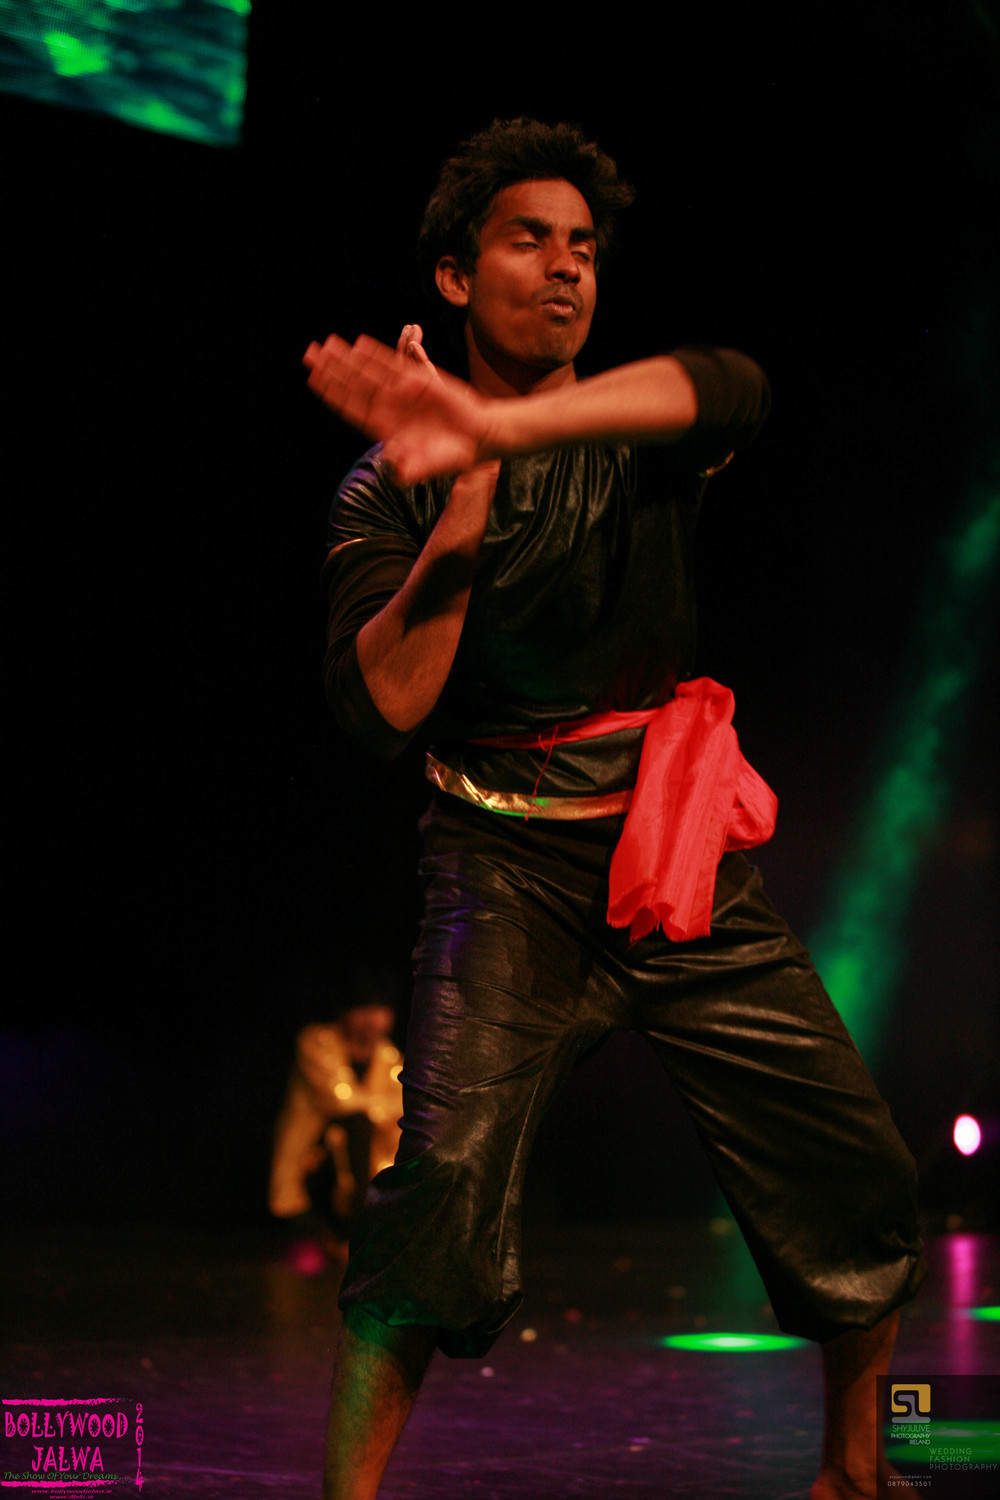 BOLLYWOOD JALWA 2014-606-2.JPG